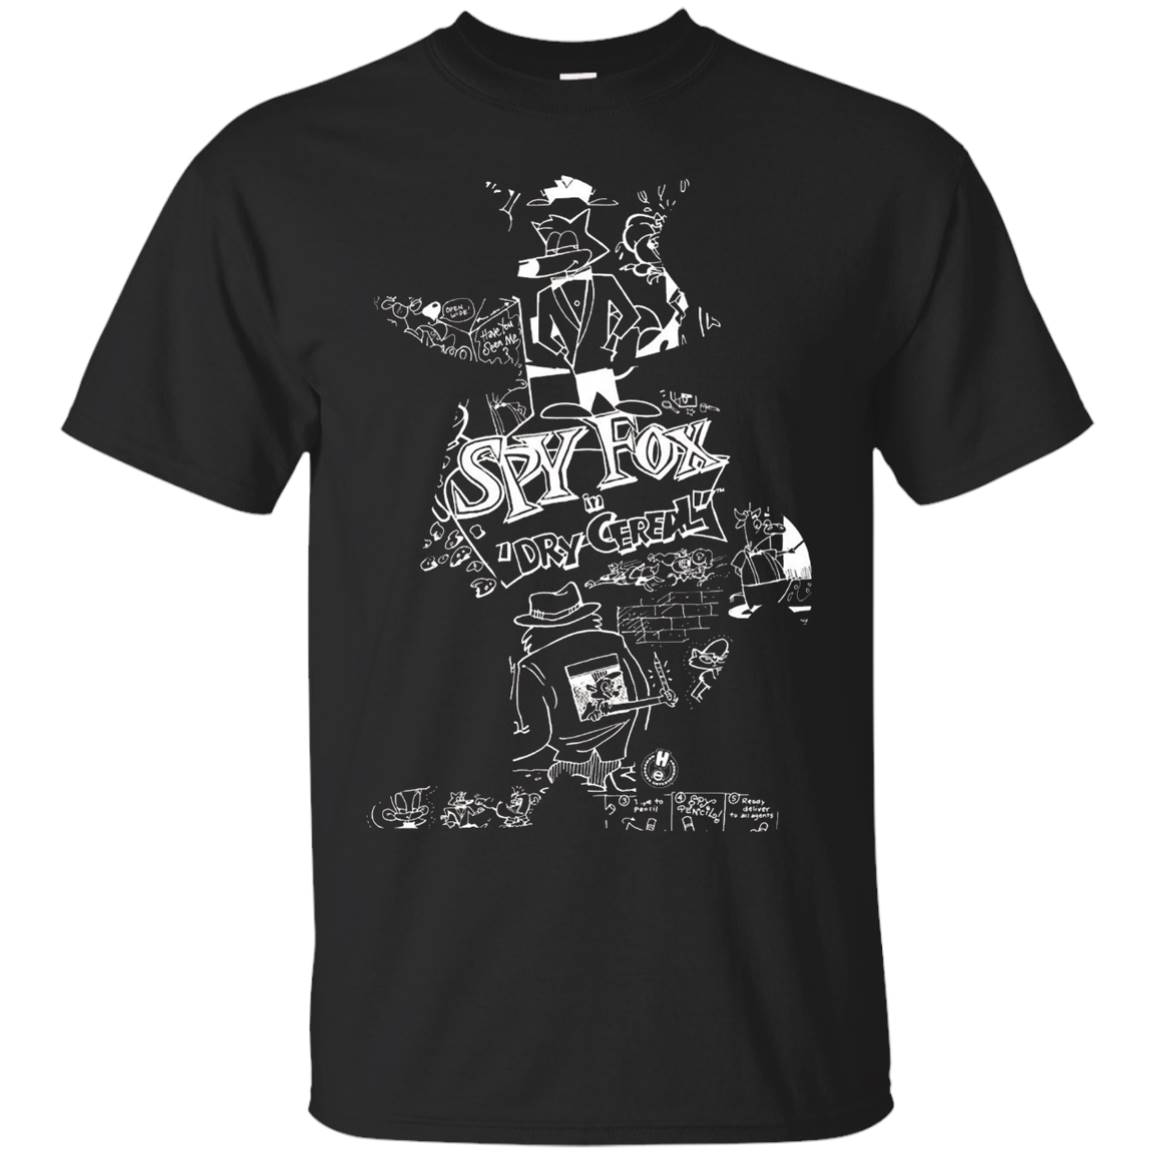 Humongous Entertainment Spy Fox Silhouette T-Shirt